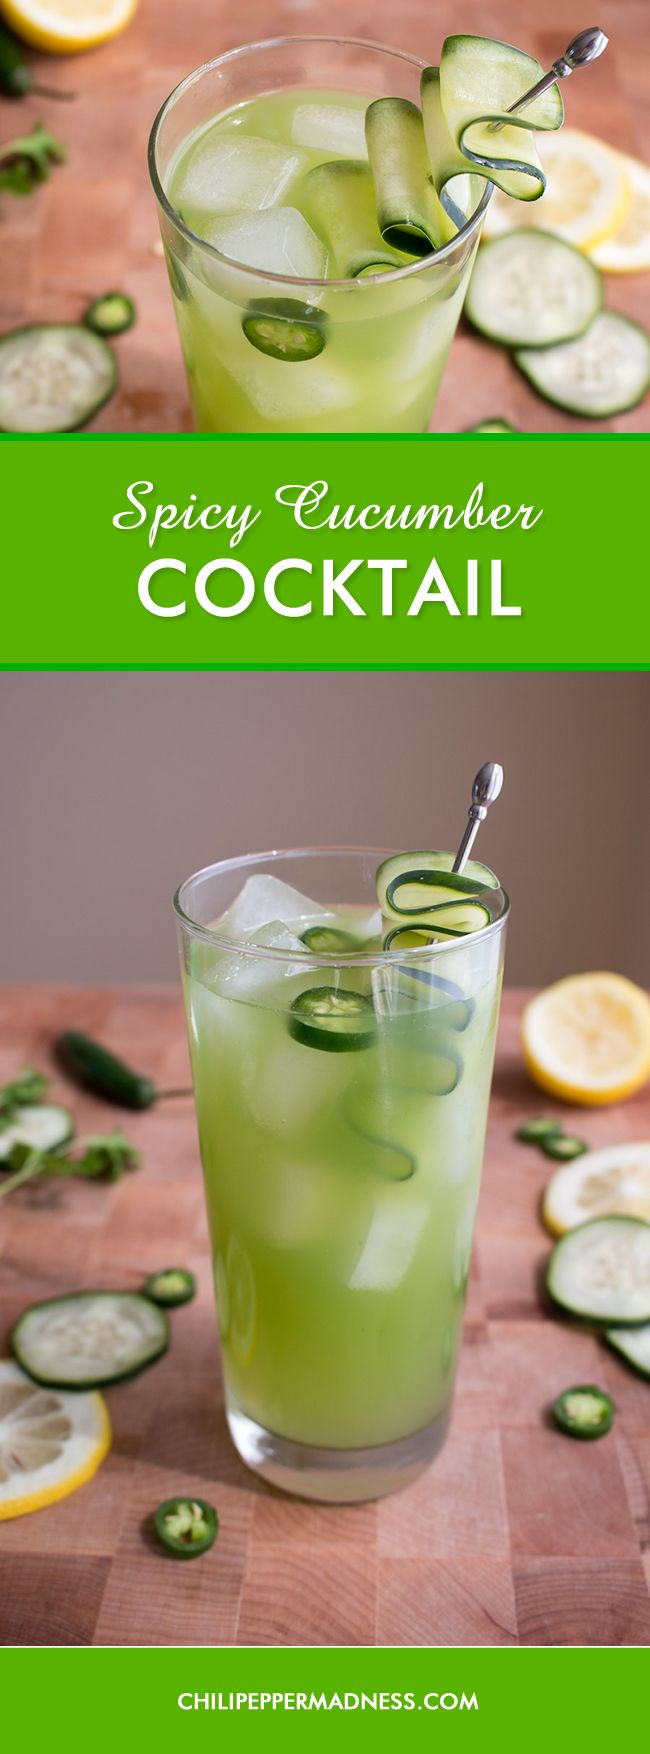 Spicy Cucumber Cocktail - A refreshing cocktail recipe featuring the flavors of crisp cucumber, fragrant cilantro, tart lemon and fiery serrano pepper, made a little sweet with sugar and rallied with cilantro vodka. Cocktail time, my friends!